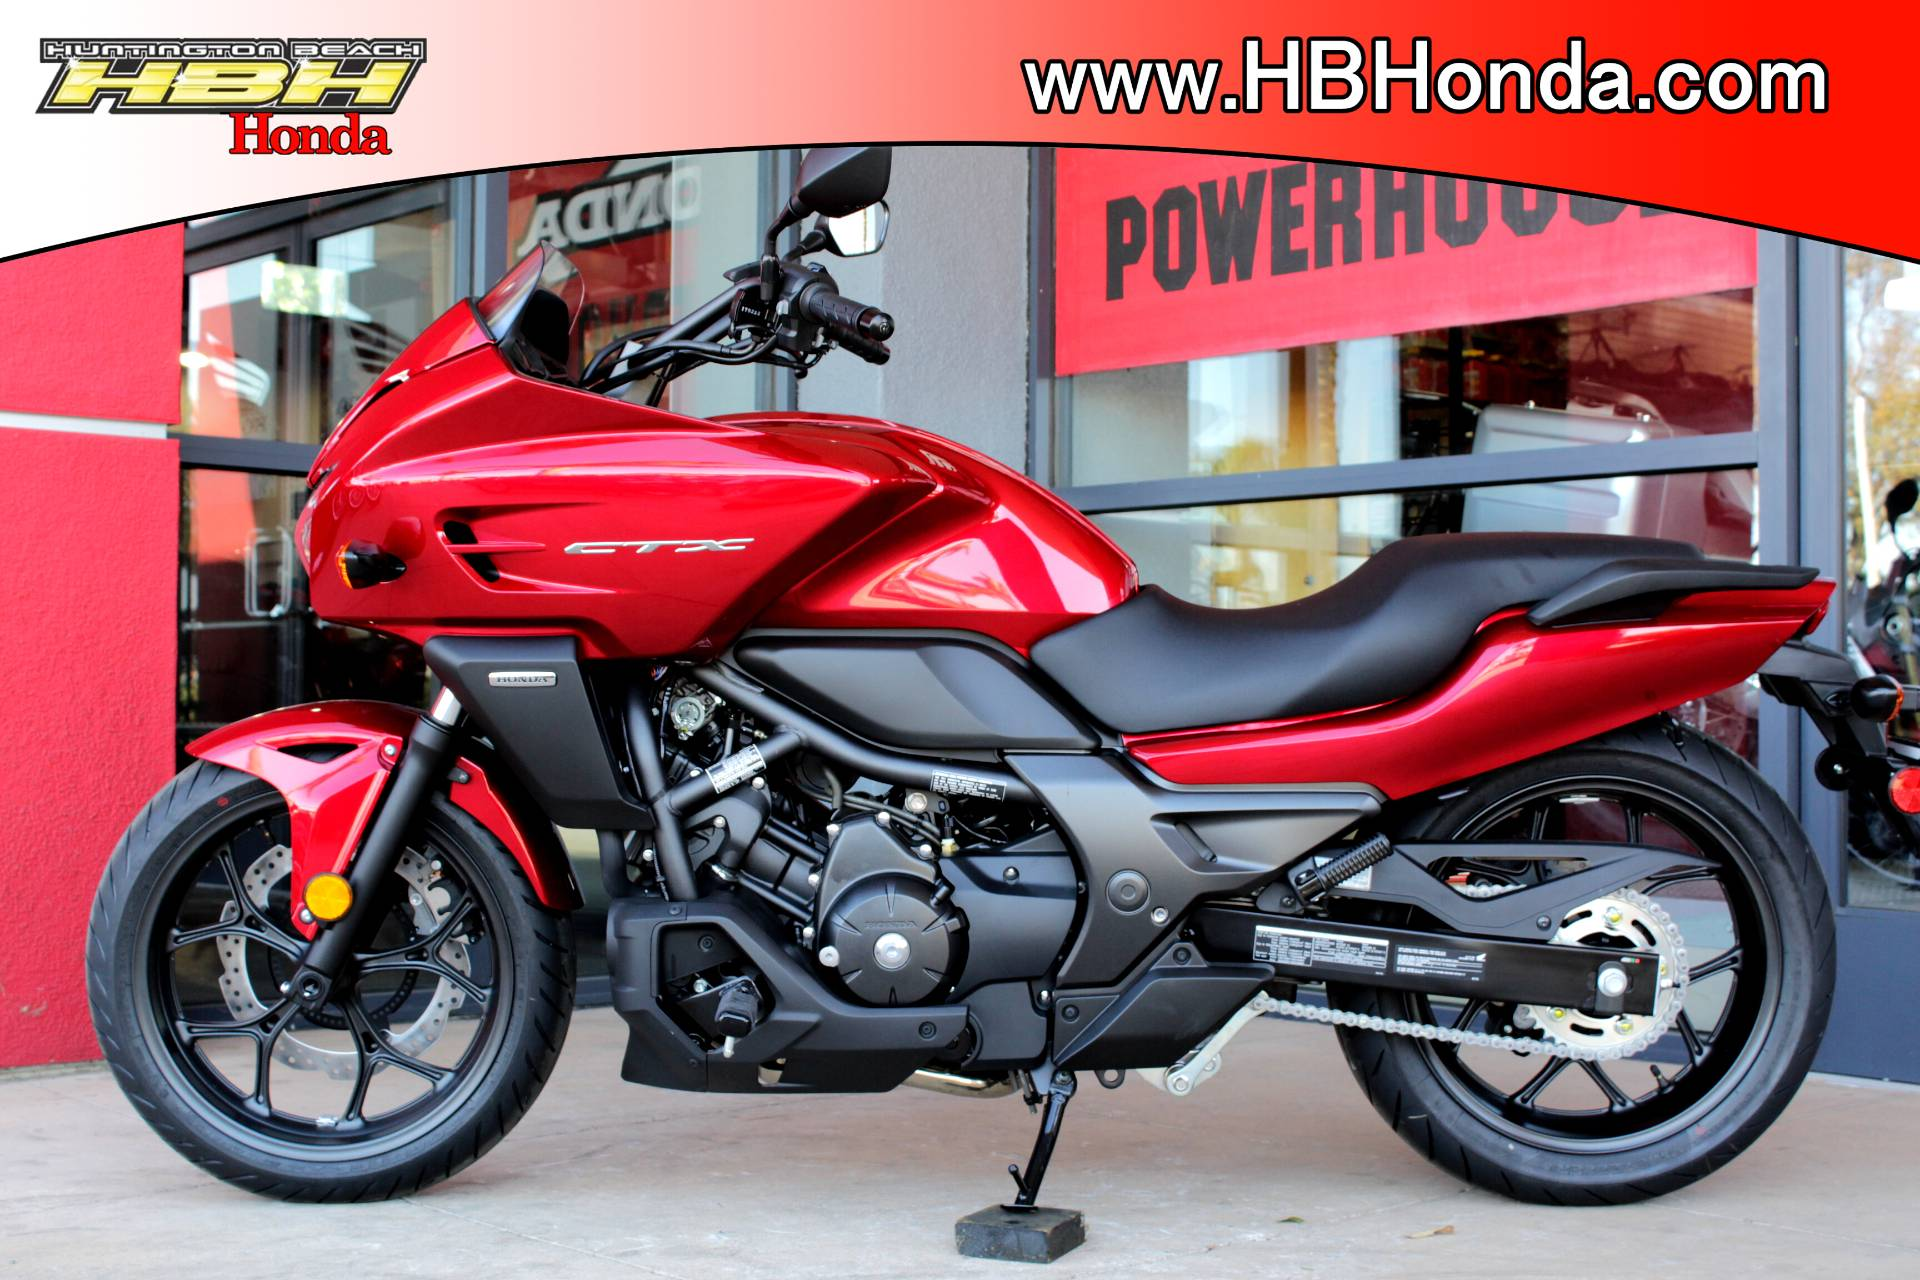 new 2017 honda ctx700 dct motorcycles for sale in huntington beach ca. Black Bedroom Furniture Sets. Home Design Ideas